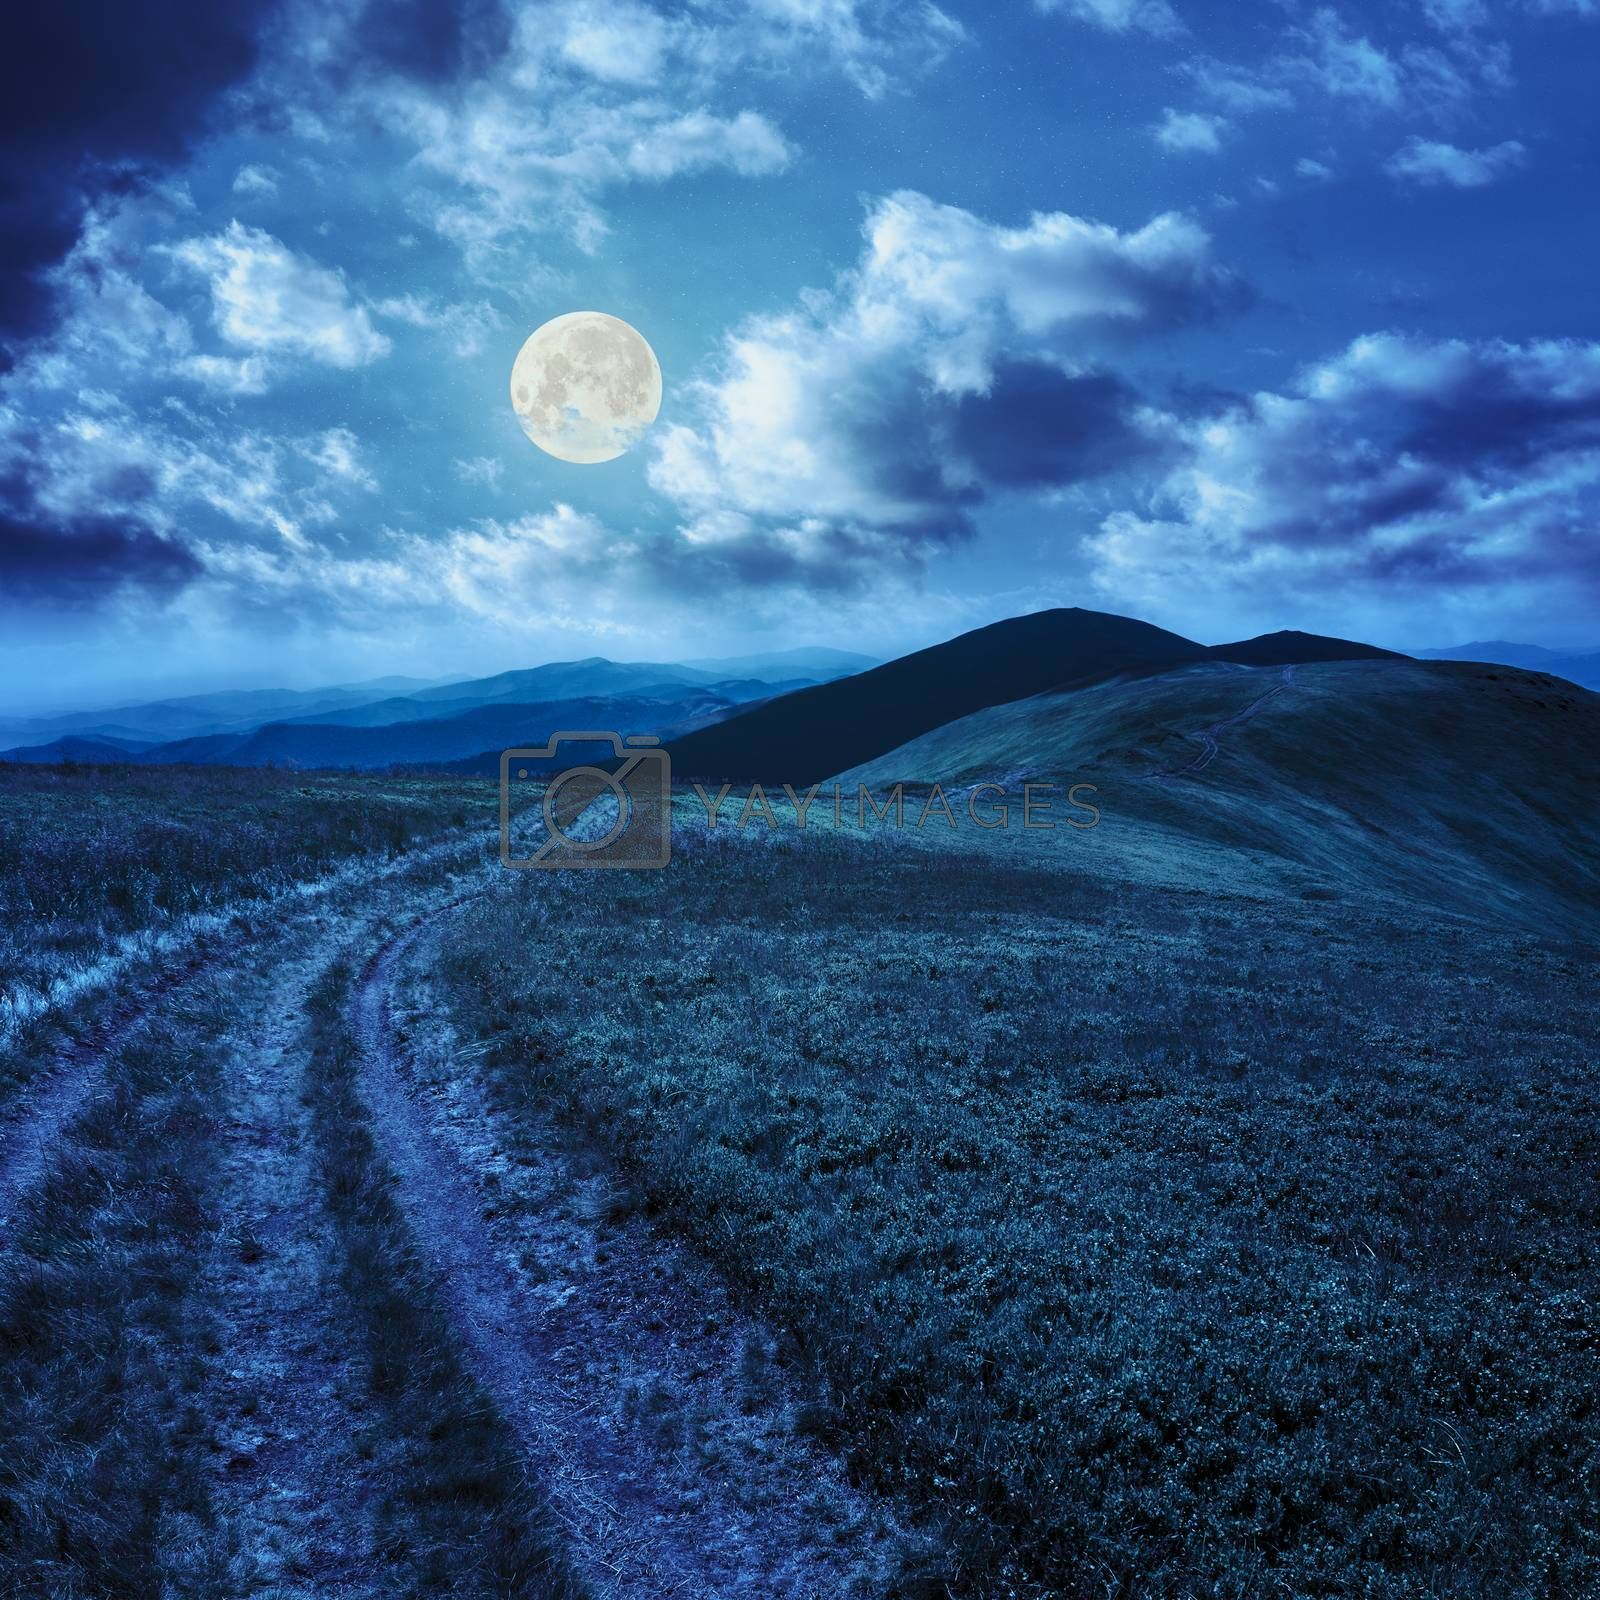 path on the mountain top at night by Pellinni